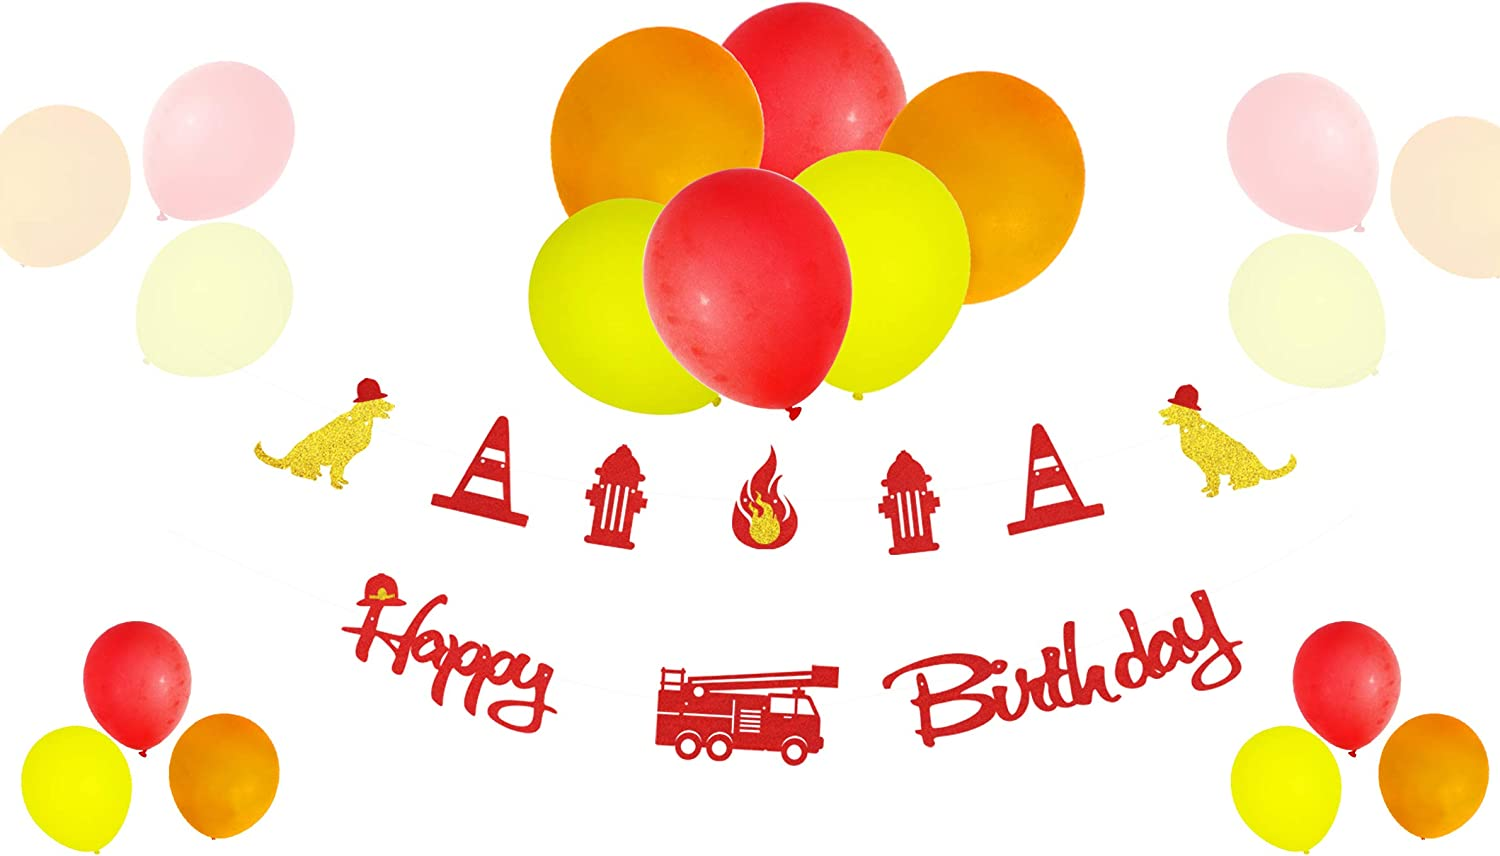 KAPOKKU Fire Truck Happy Birthday Party Banner Balloon Decor Set Glitter Cardboard Fire tools Party Supplies Firefighter Cake Decoration